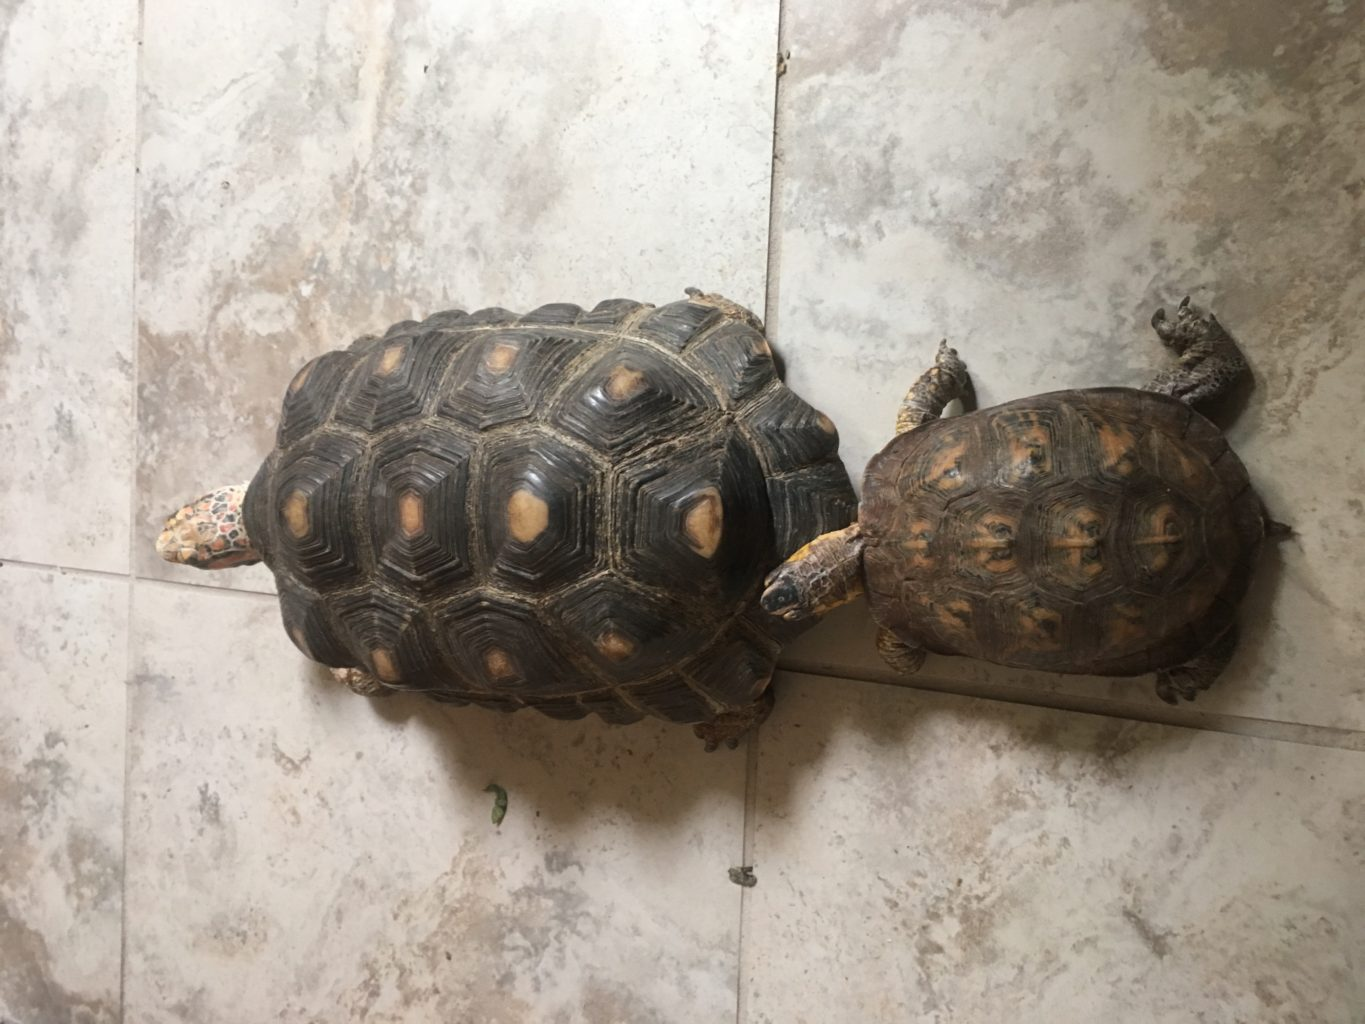 A box turtle approaches a red-foot tortoise, on a tile floor